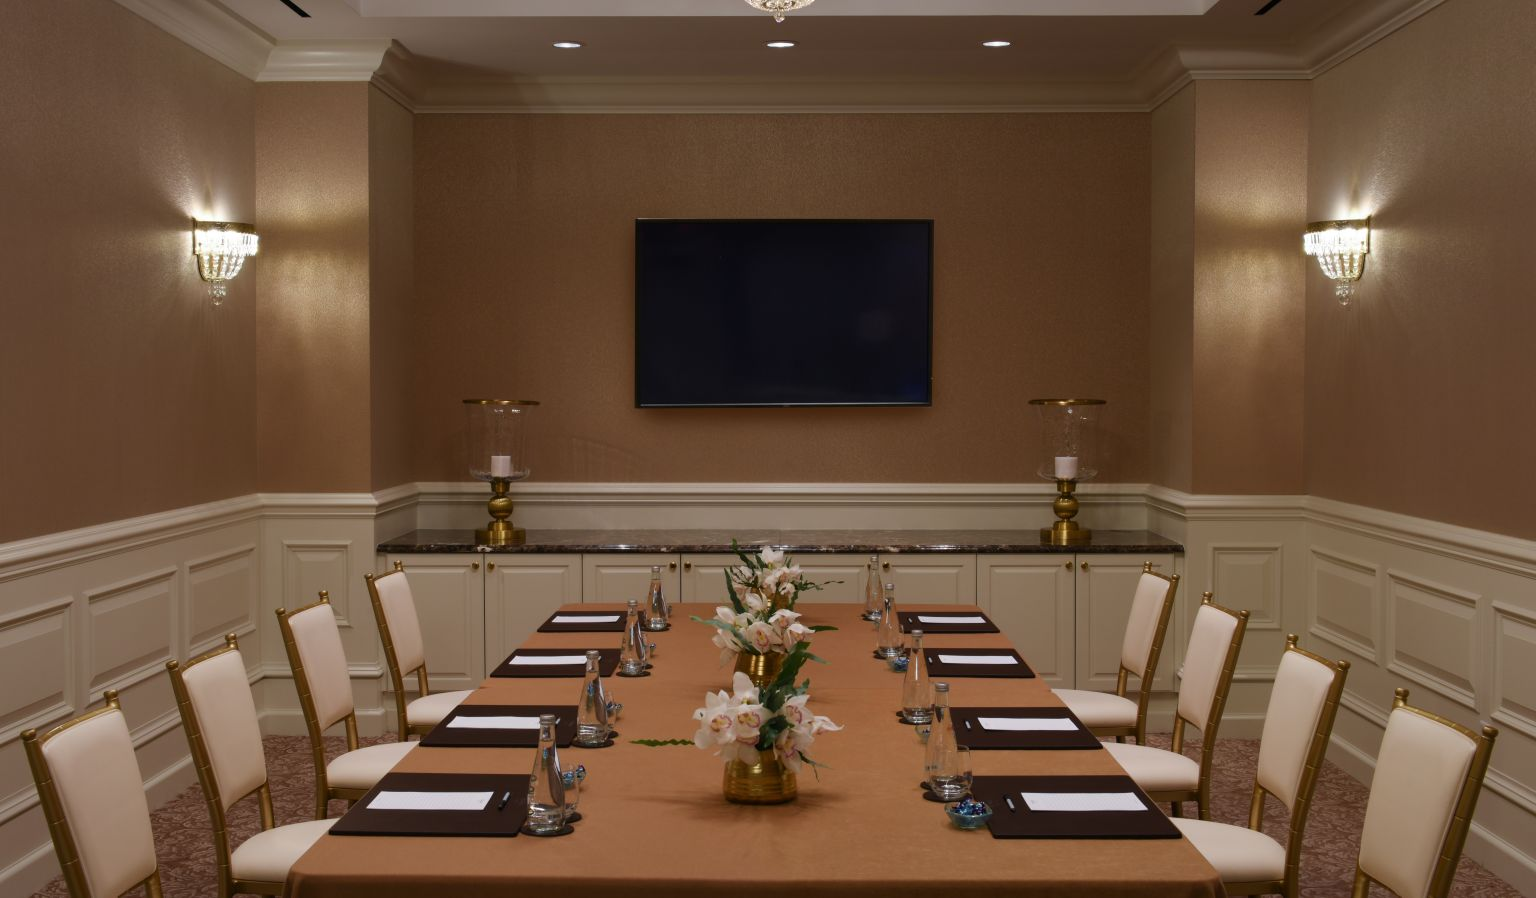 Private Meeting Room With Table and Chairs